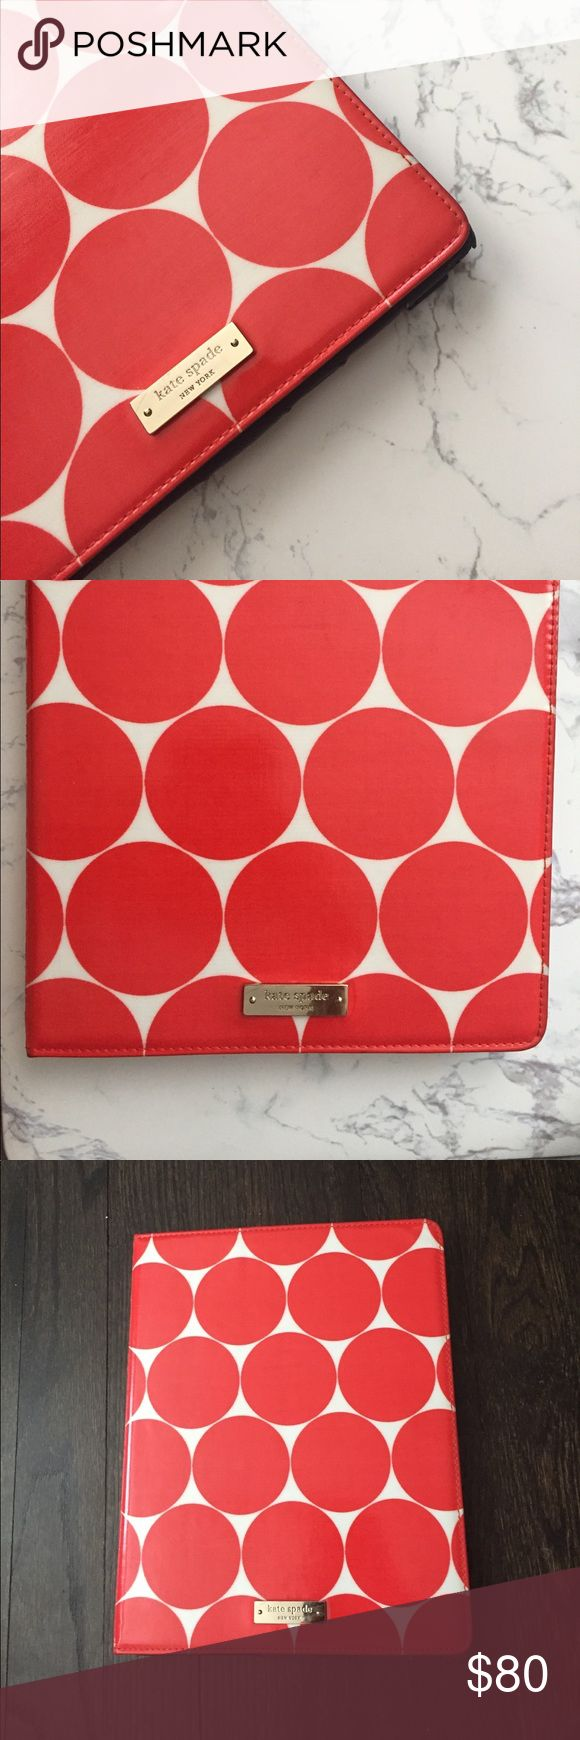 Kate Spade iPad 2 Case Good condition! Price is reflective on any wear, See photos. Beautiful white and red polka dots and navy blue interior. kate spade Accessories Tablet Cases